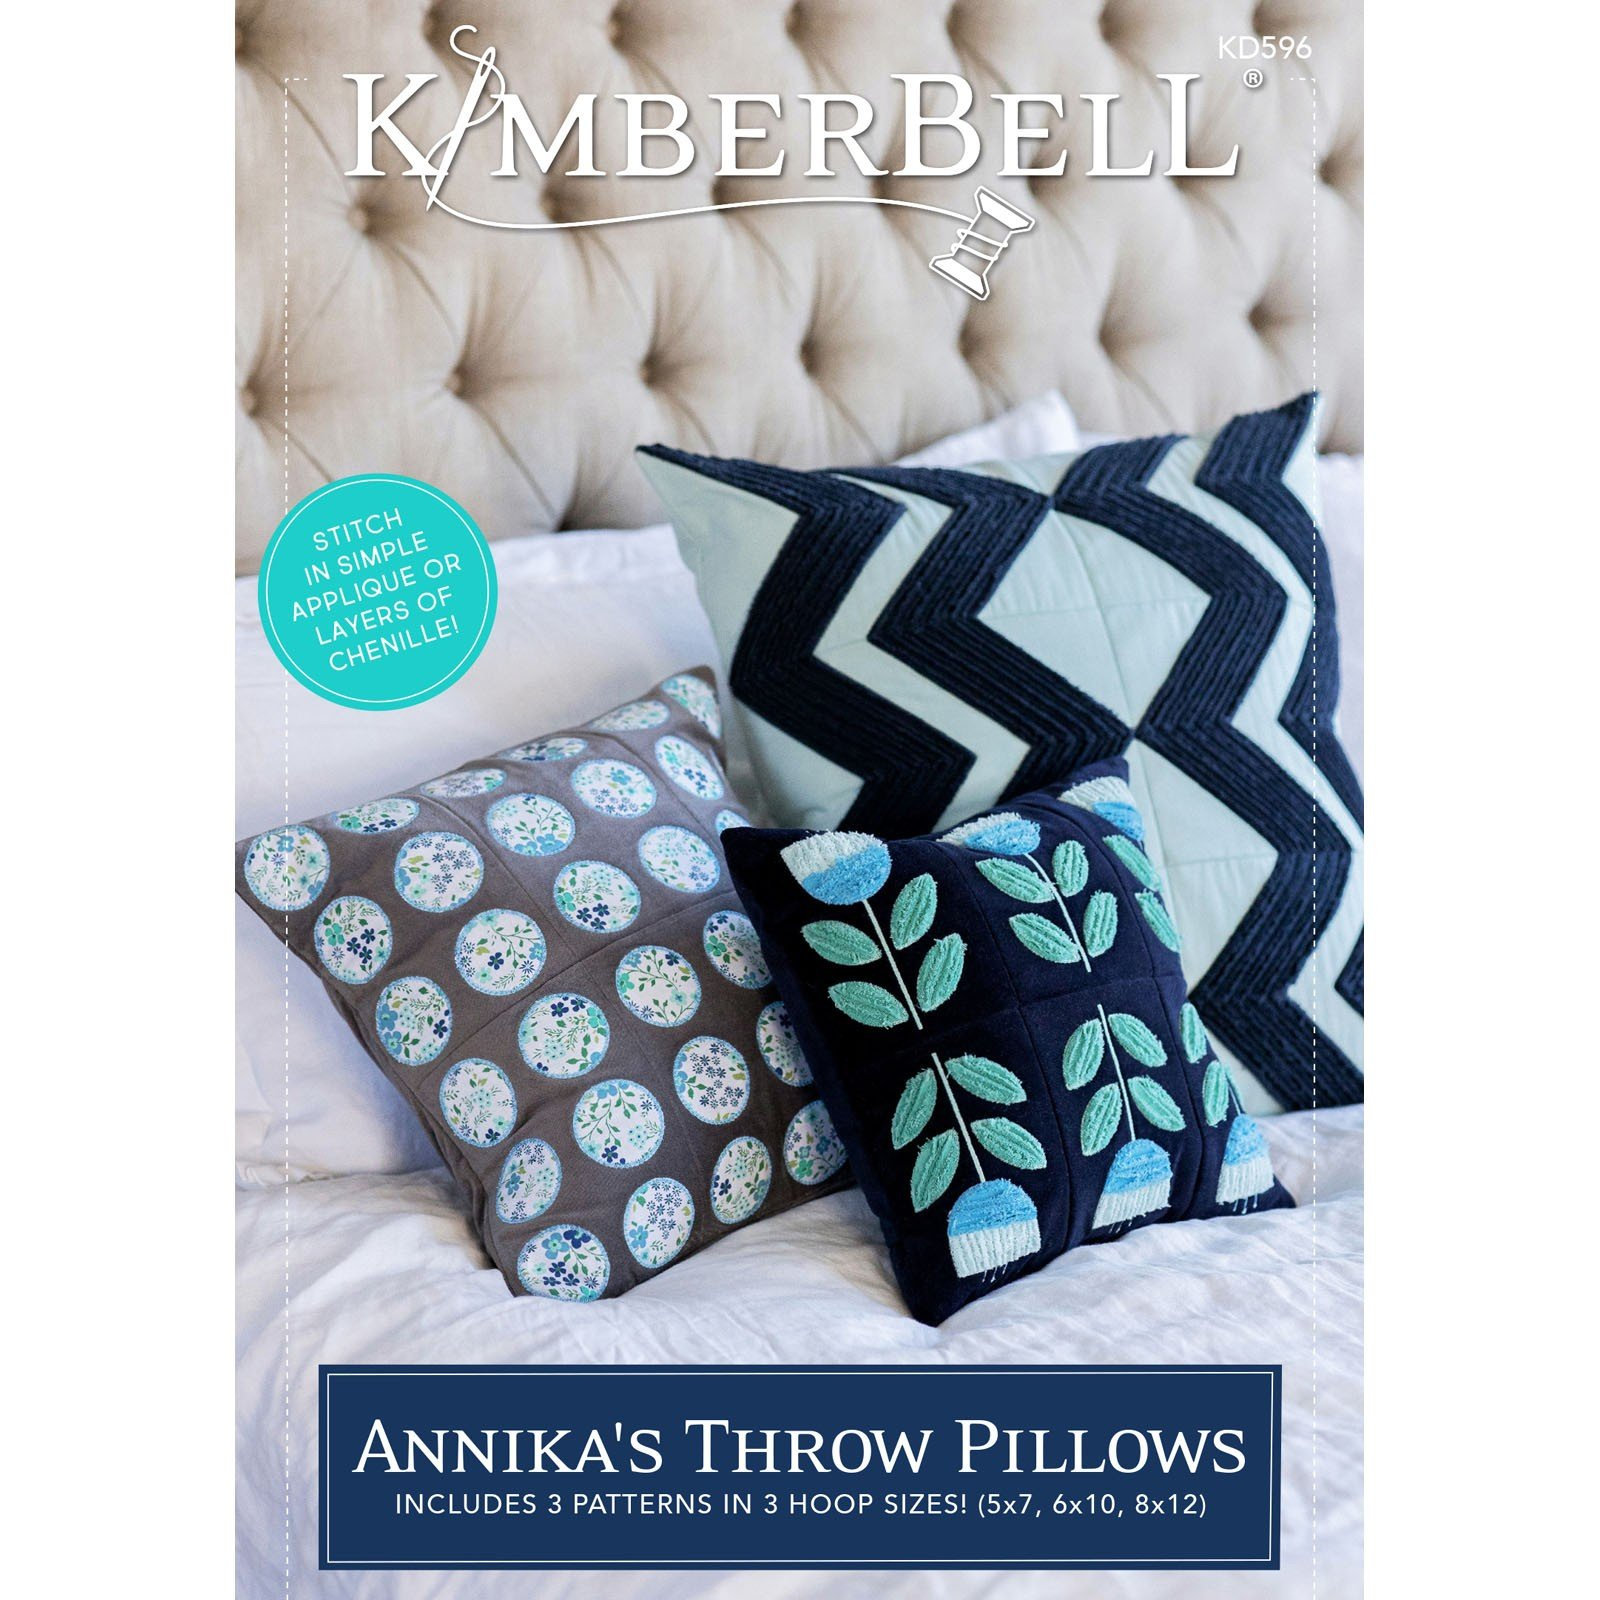 Annika's Throw Pillows (Embroidery CD) by Kimberbell